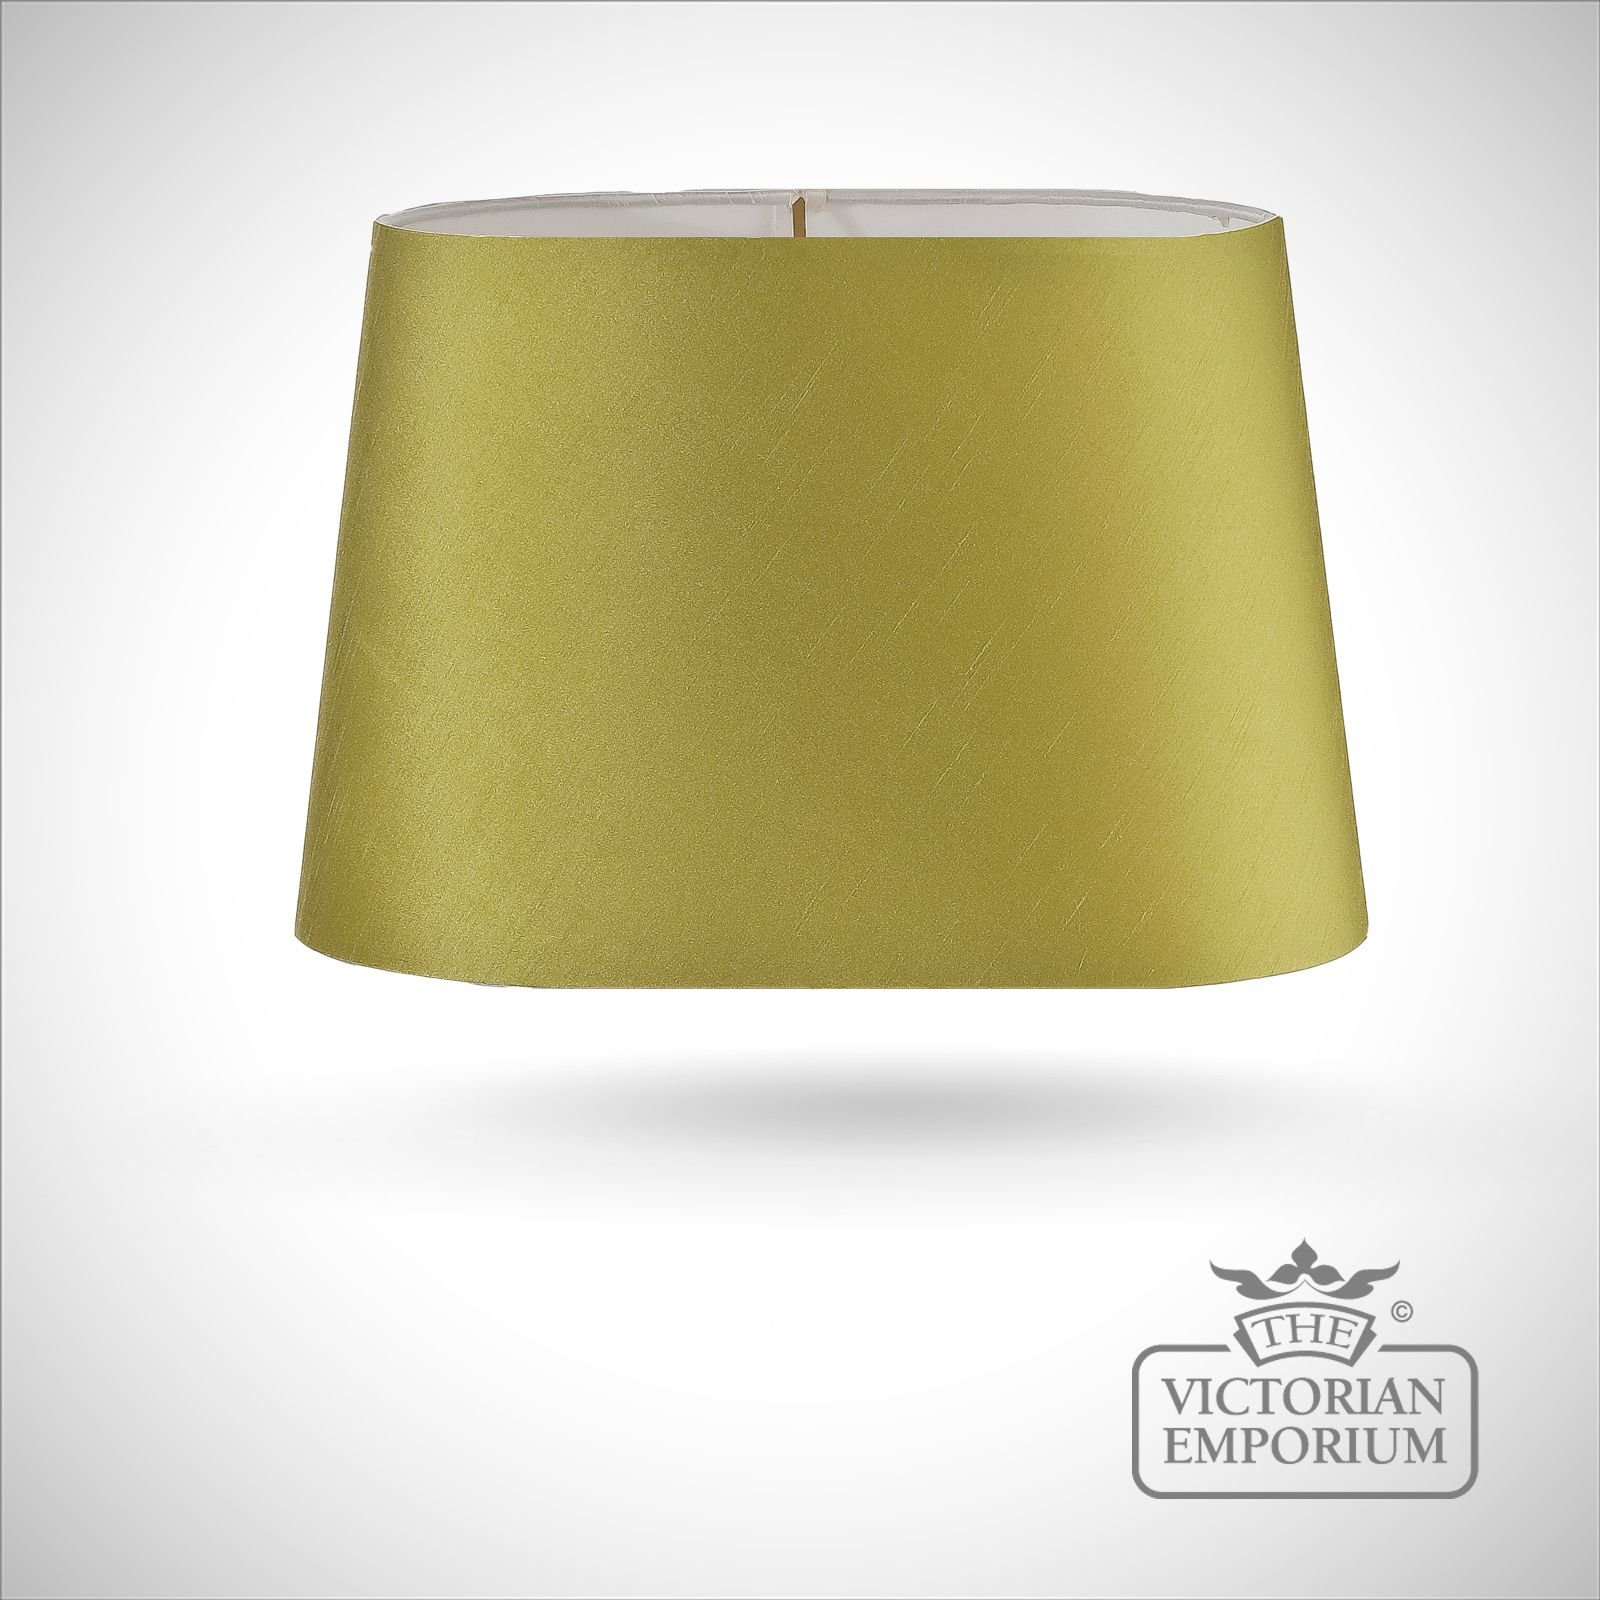 Tapered Oval Lamp Shade In Lime Green 39cm Lamp Shades